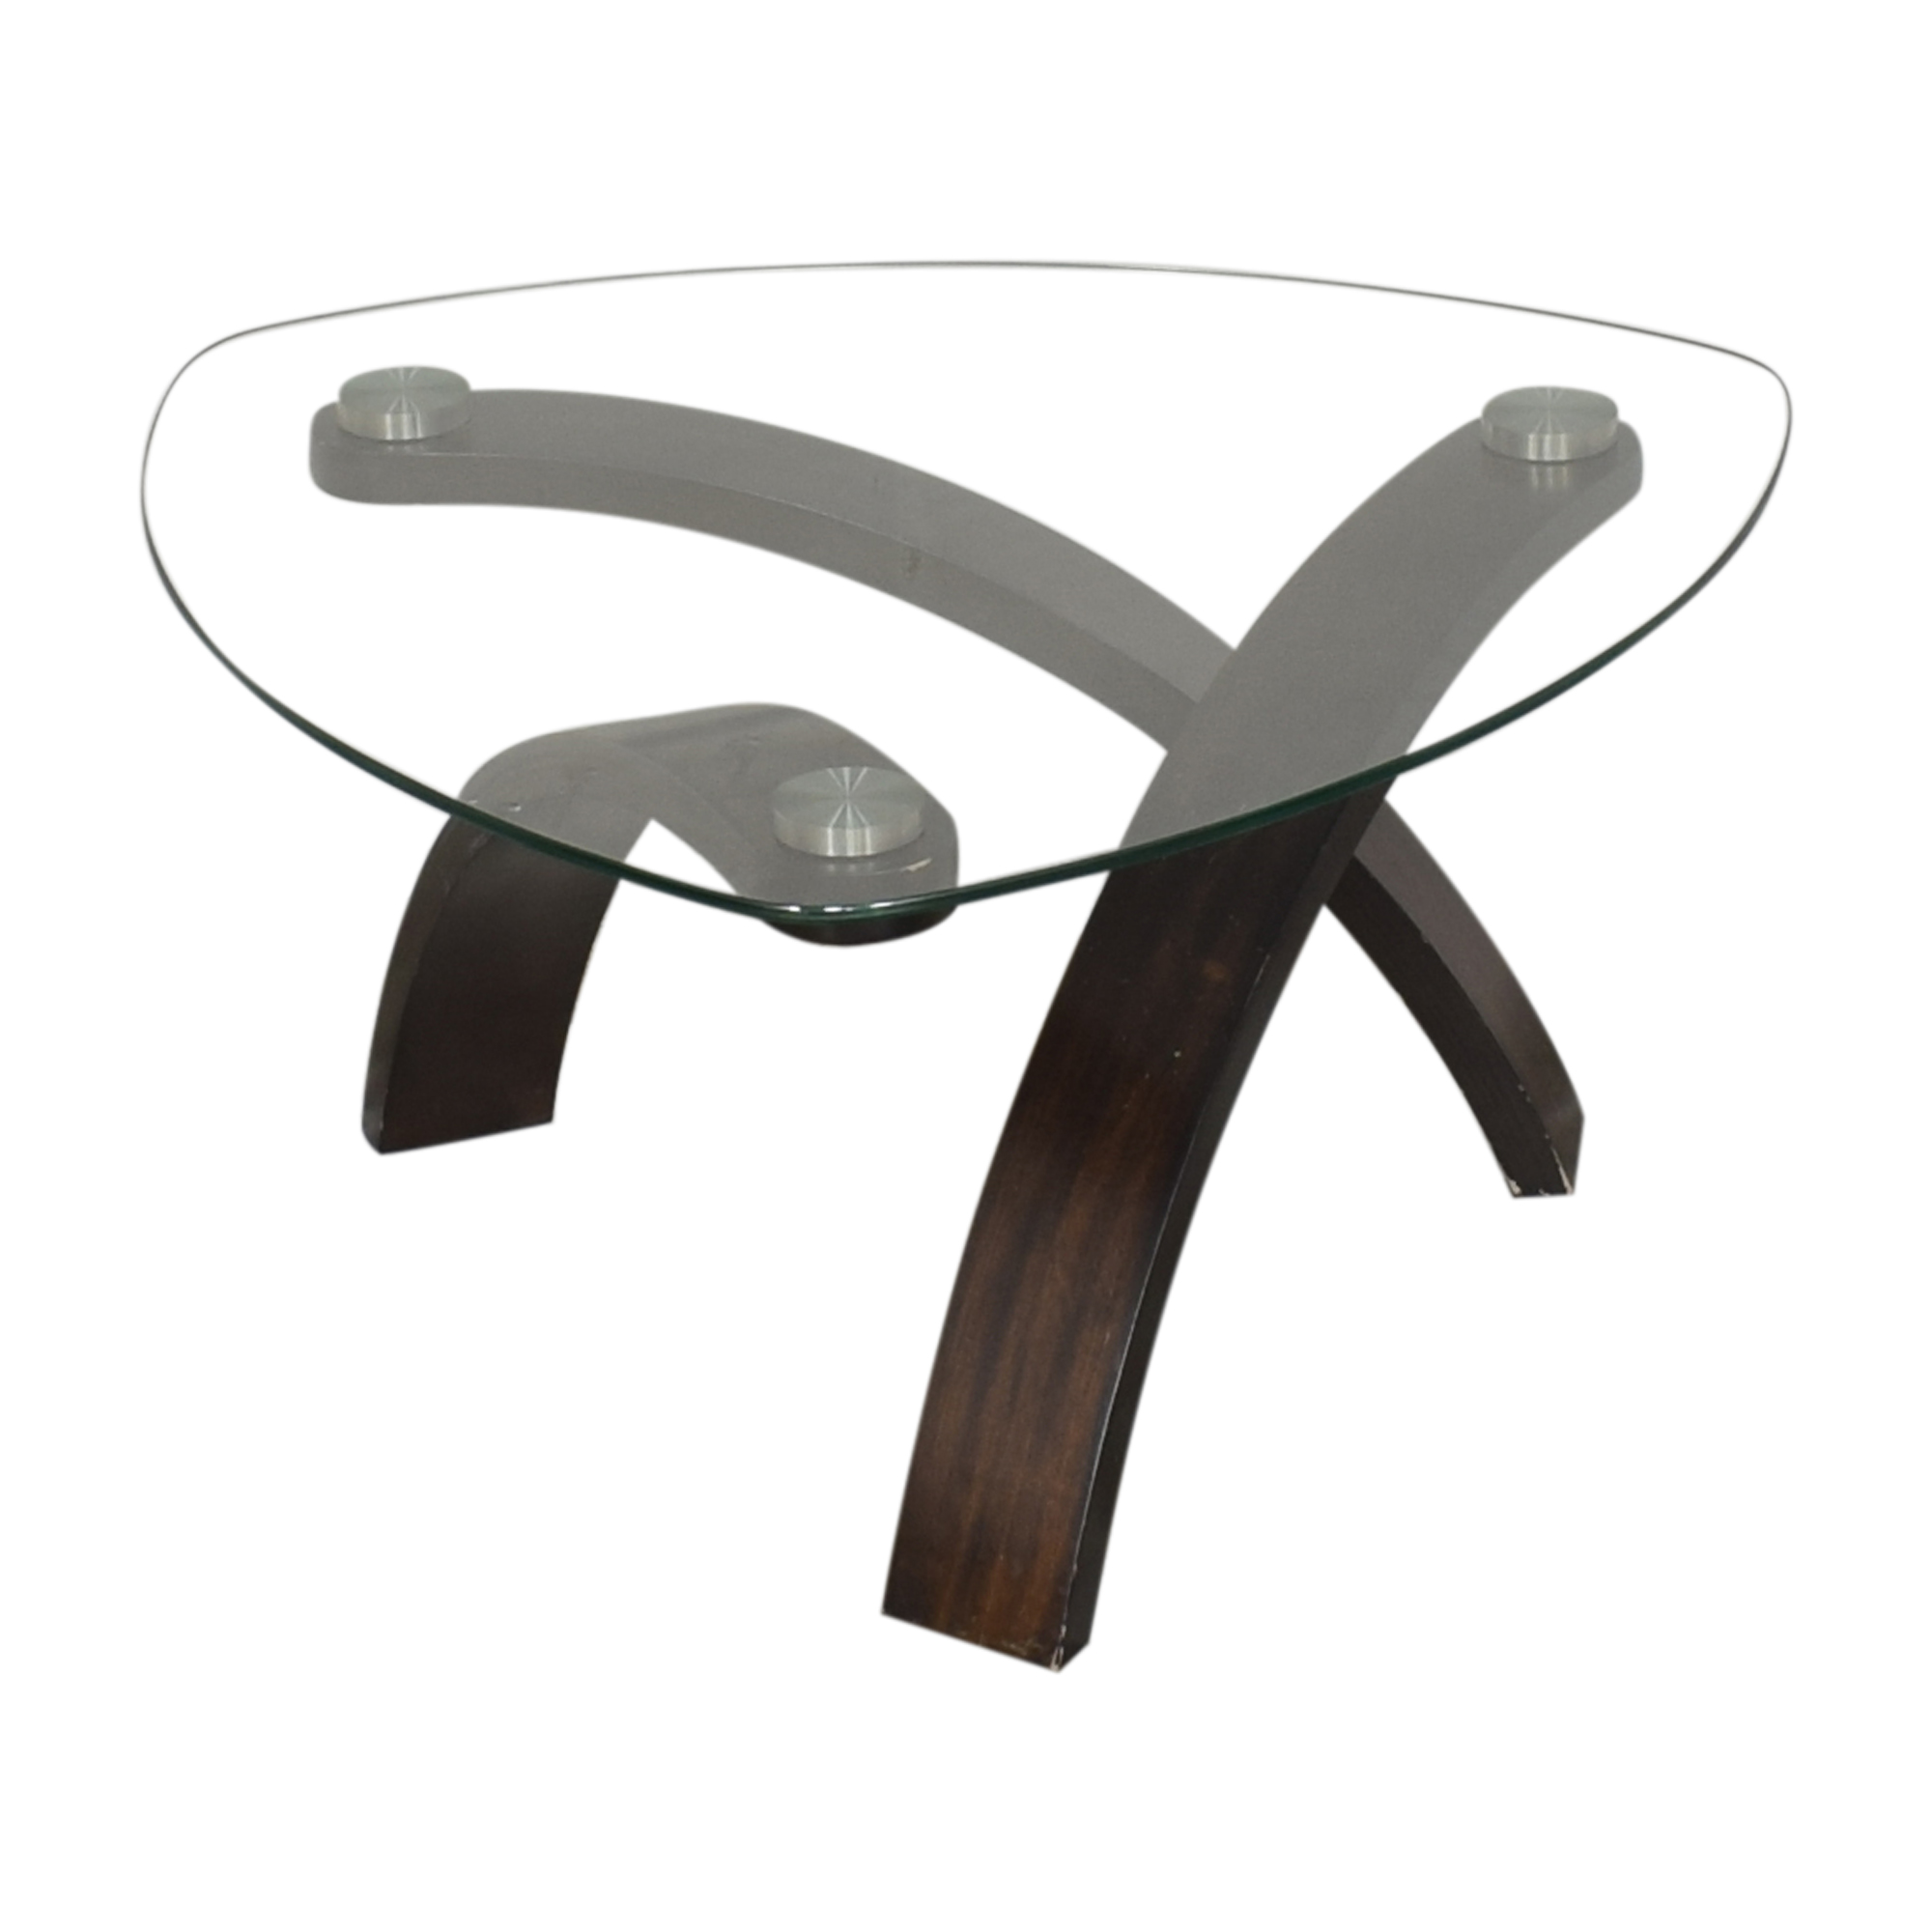 Raymour & Flanigan Raymour & Flanigan Allure Round Coffee Table ct